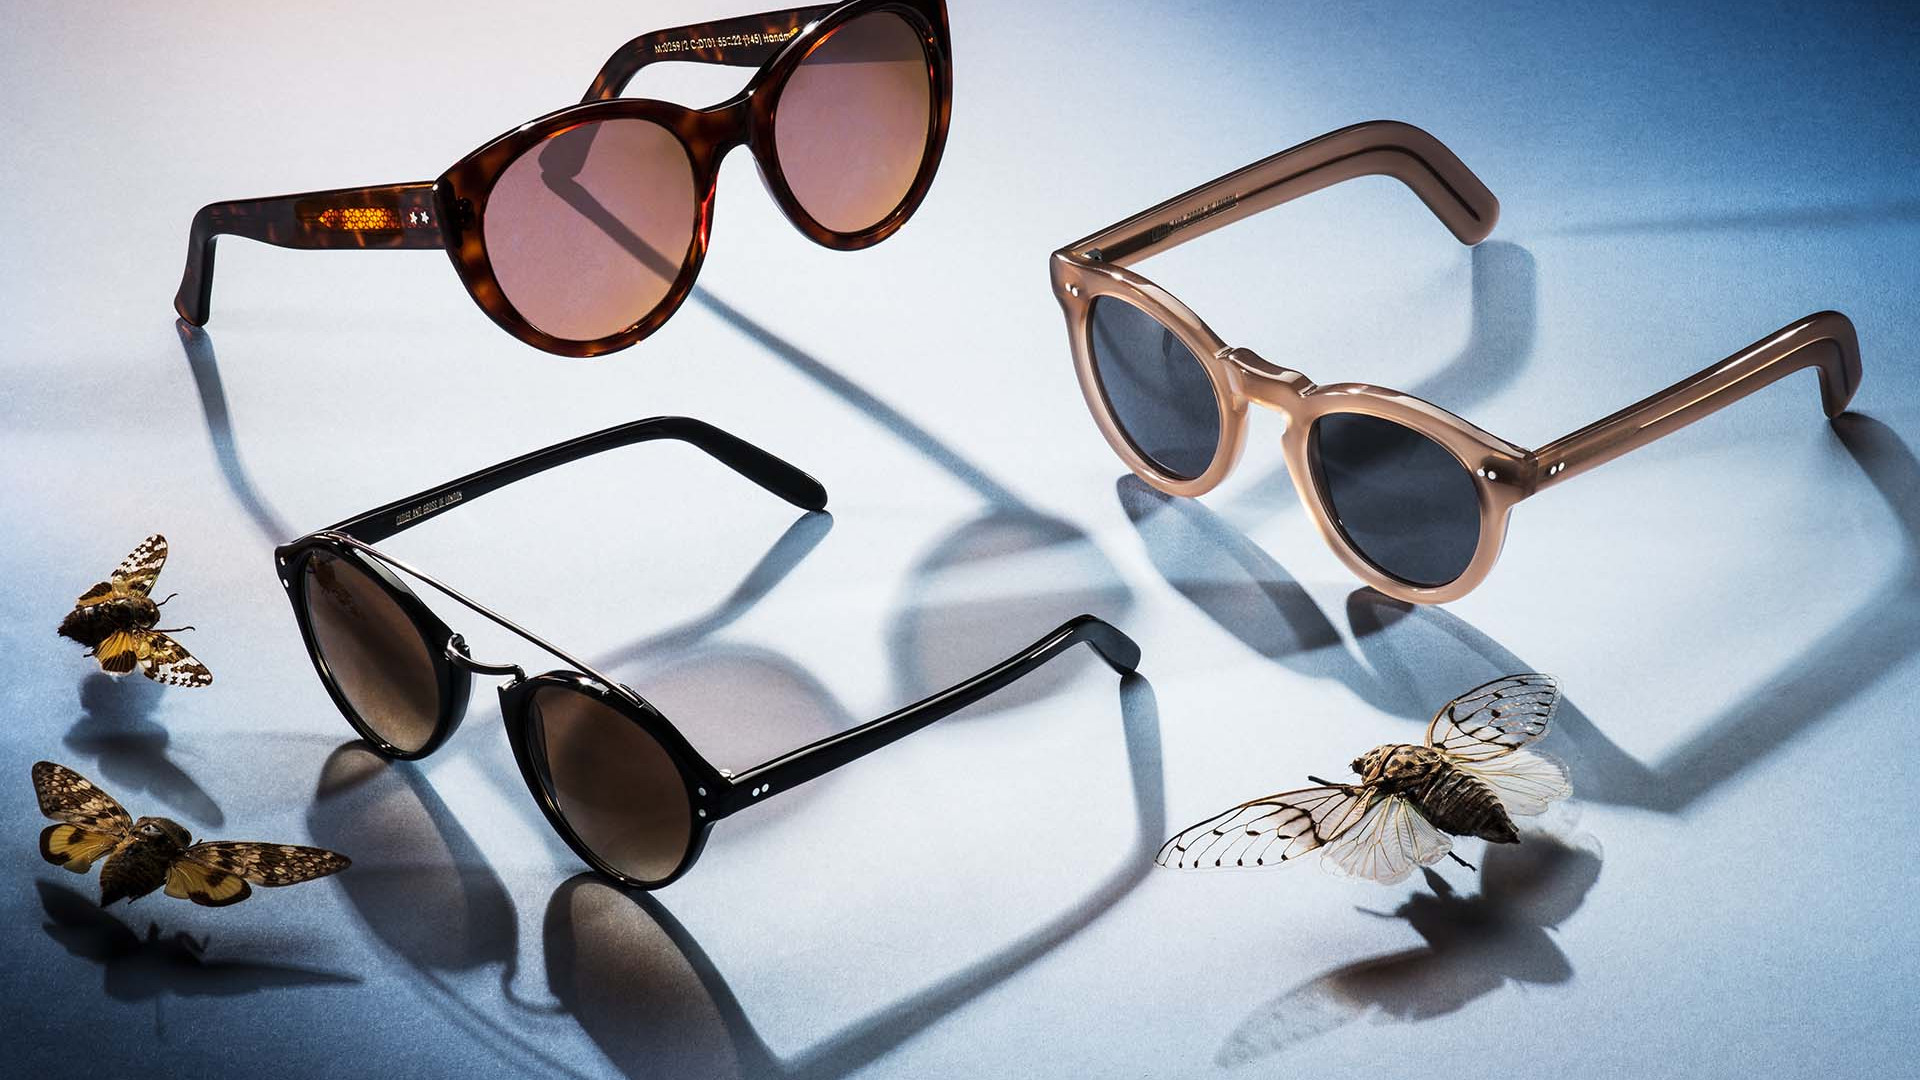 Of Sunglasses  win a pair of sunglasses from cutler gross compeions